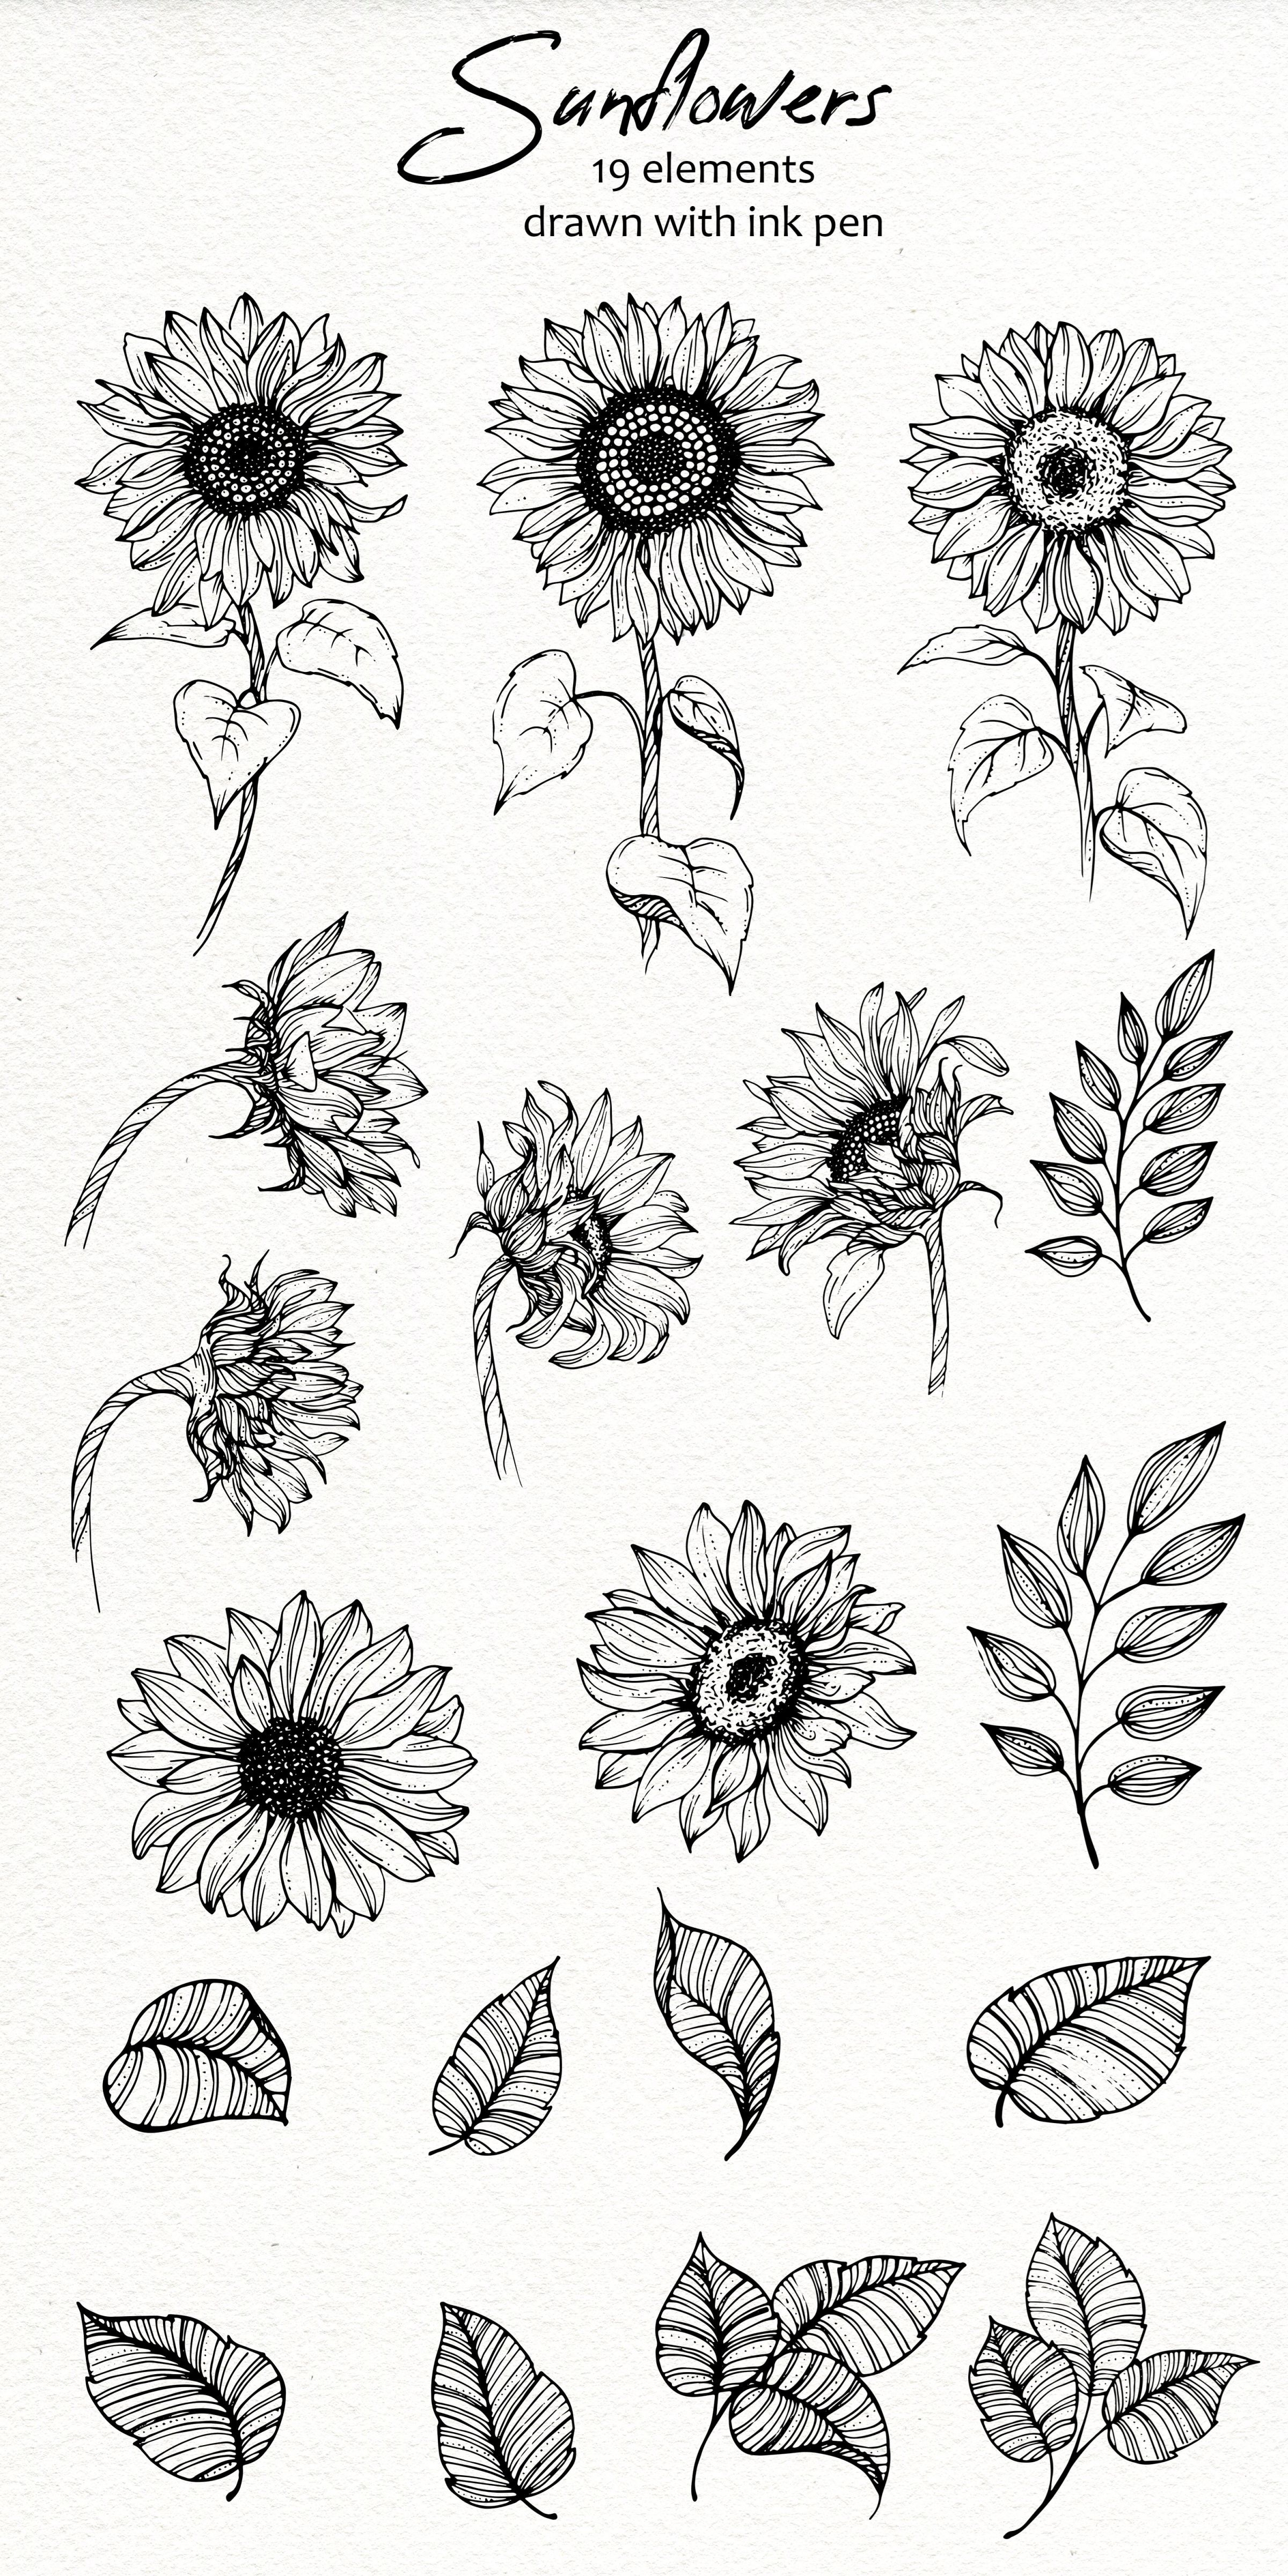 38+ Sunflower plant clipart black and white ideas in 2021